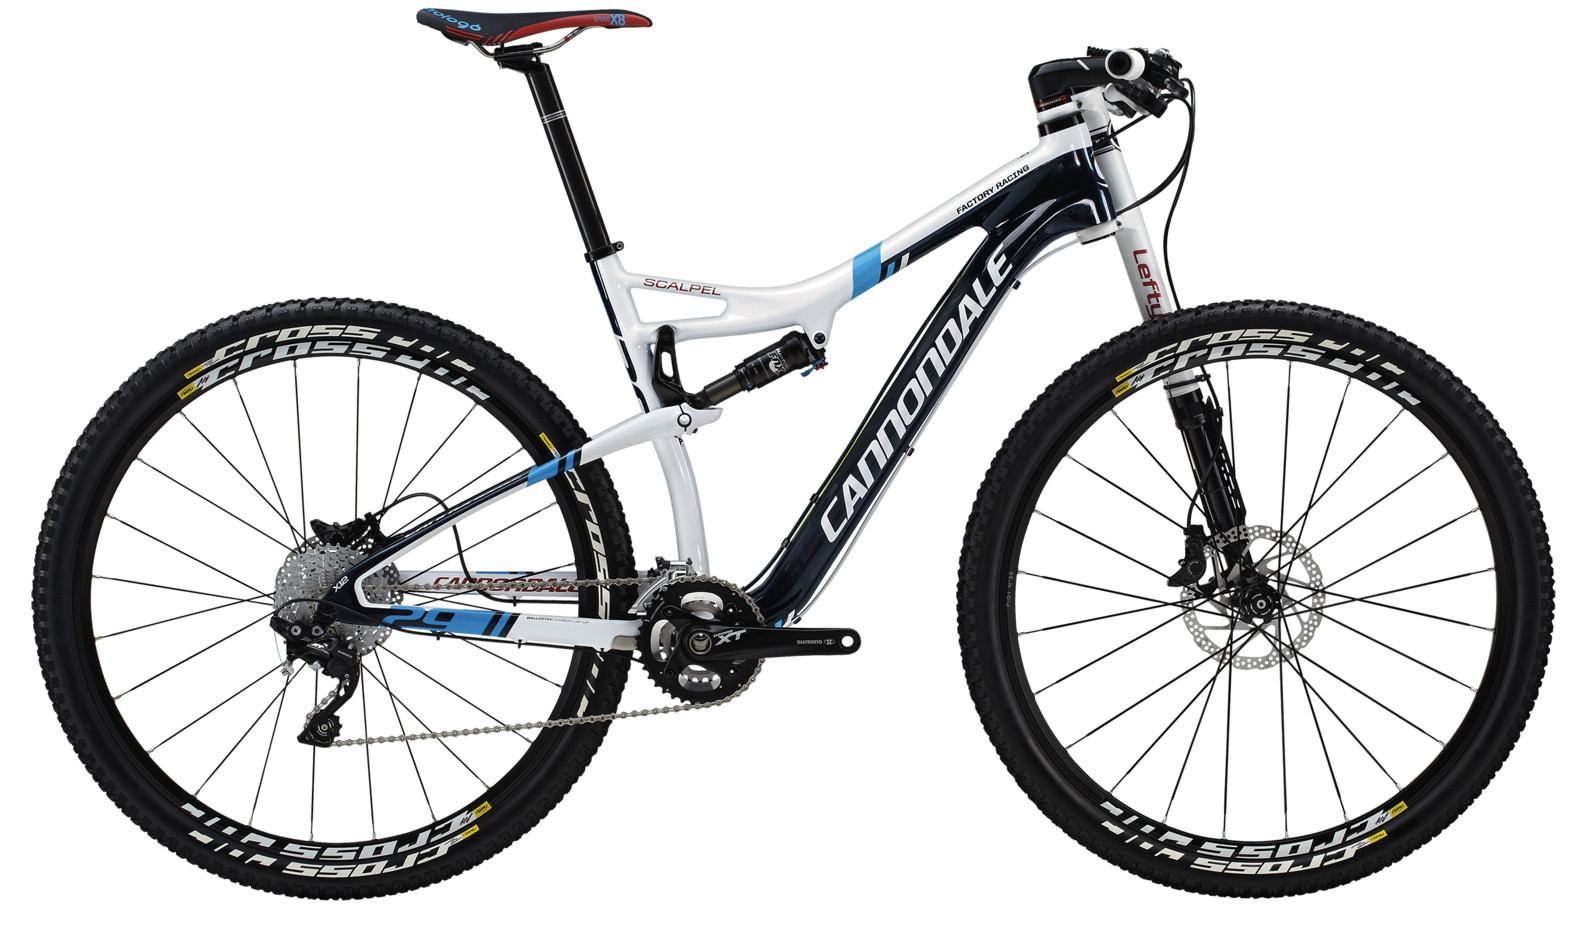 b350215a440 2014 Cannondale Scalpel 29 Carbon 2 Bike - Reviews, Comparisons ...